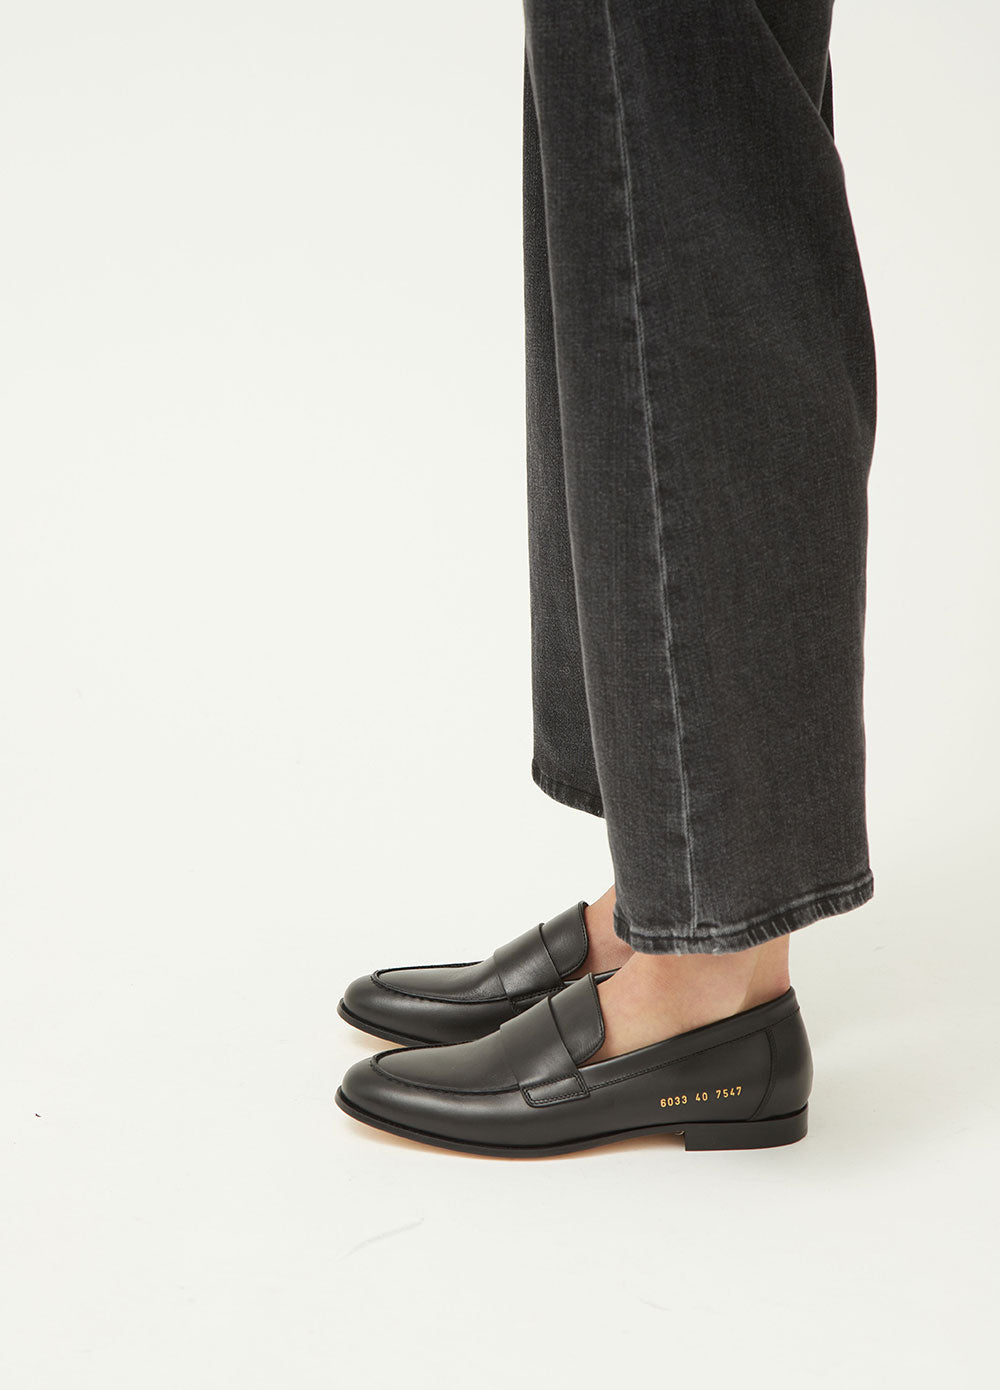 Women's Black Loafer by Common Projects